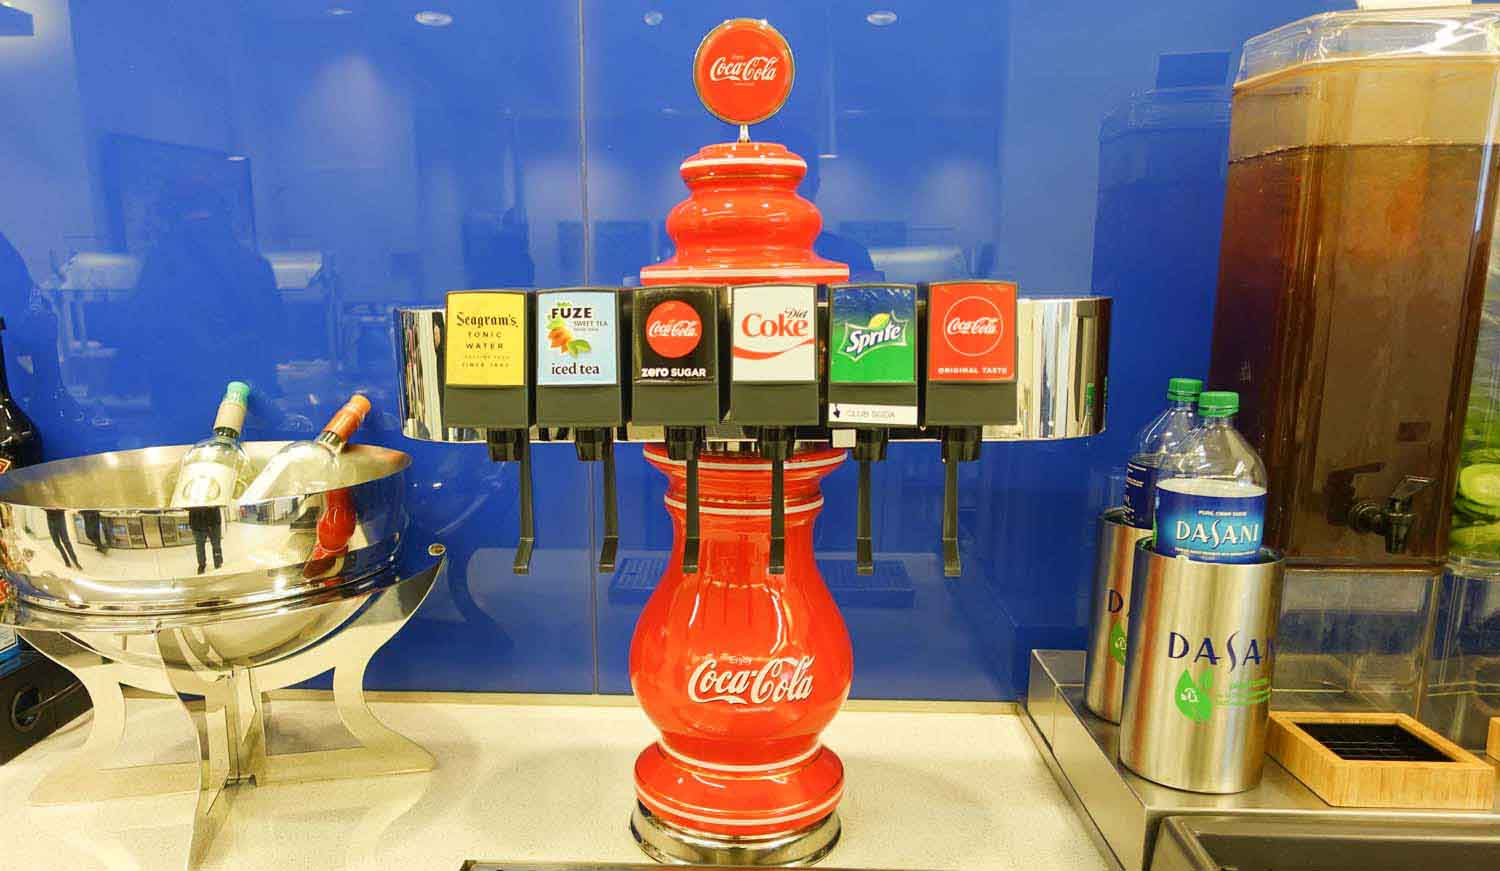 Delta Sky Club at Philadelphia Airport - Coca Cola fountain